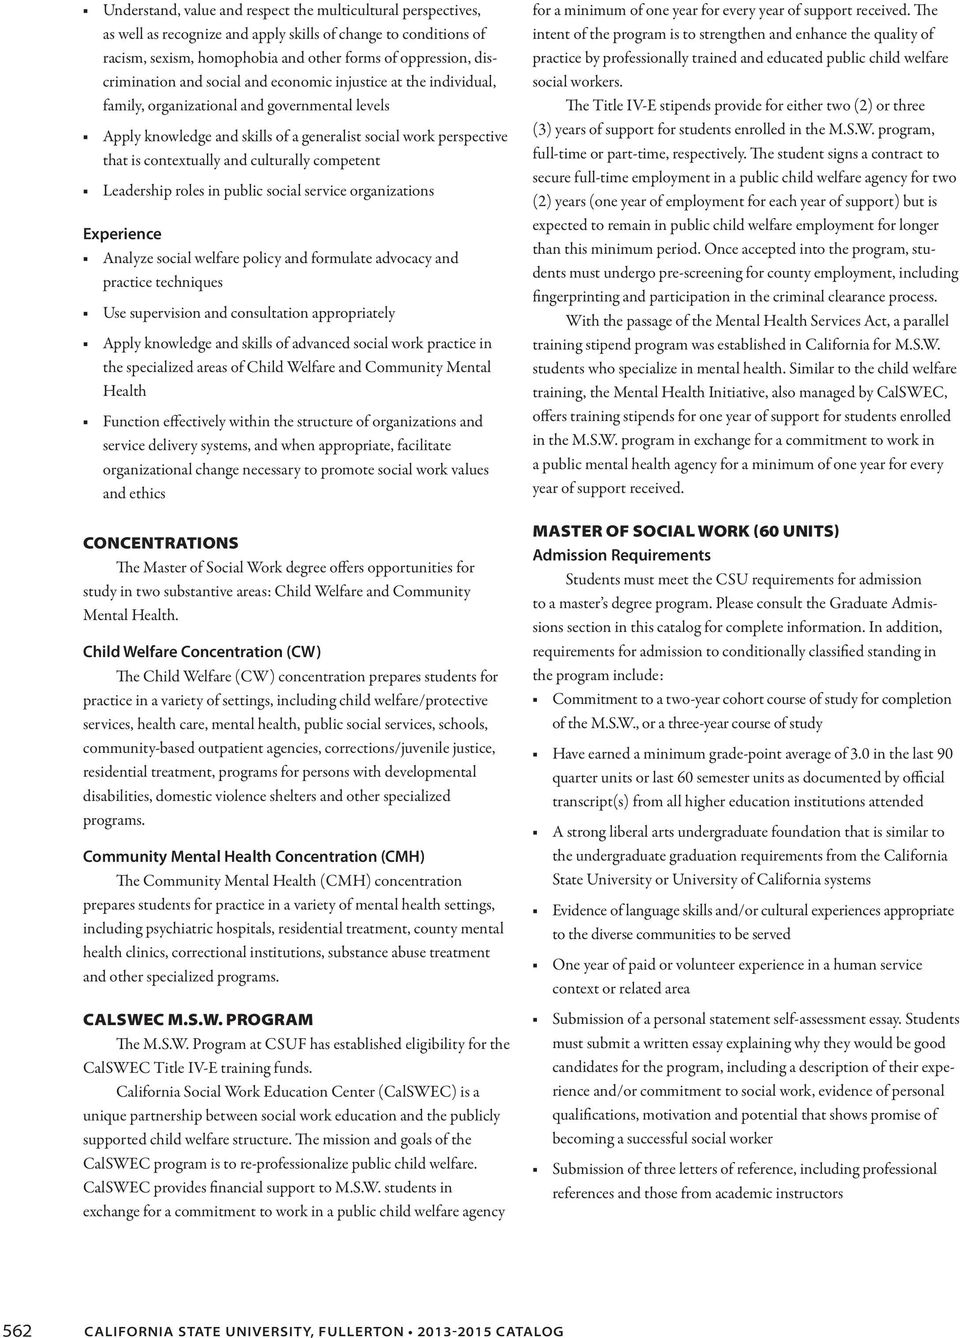 culturally competent Leadership roles in public social service organizations Experience Analyze social welfare policy and formulate advocacy and practice techniques Use supervision and consultation